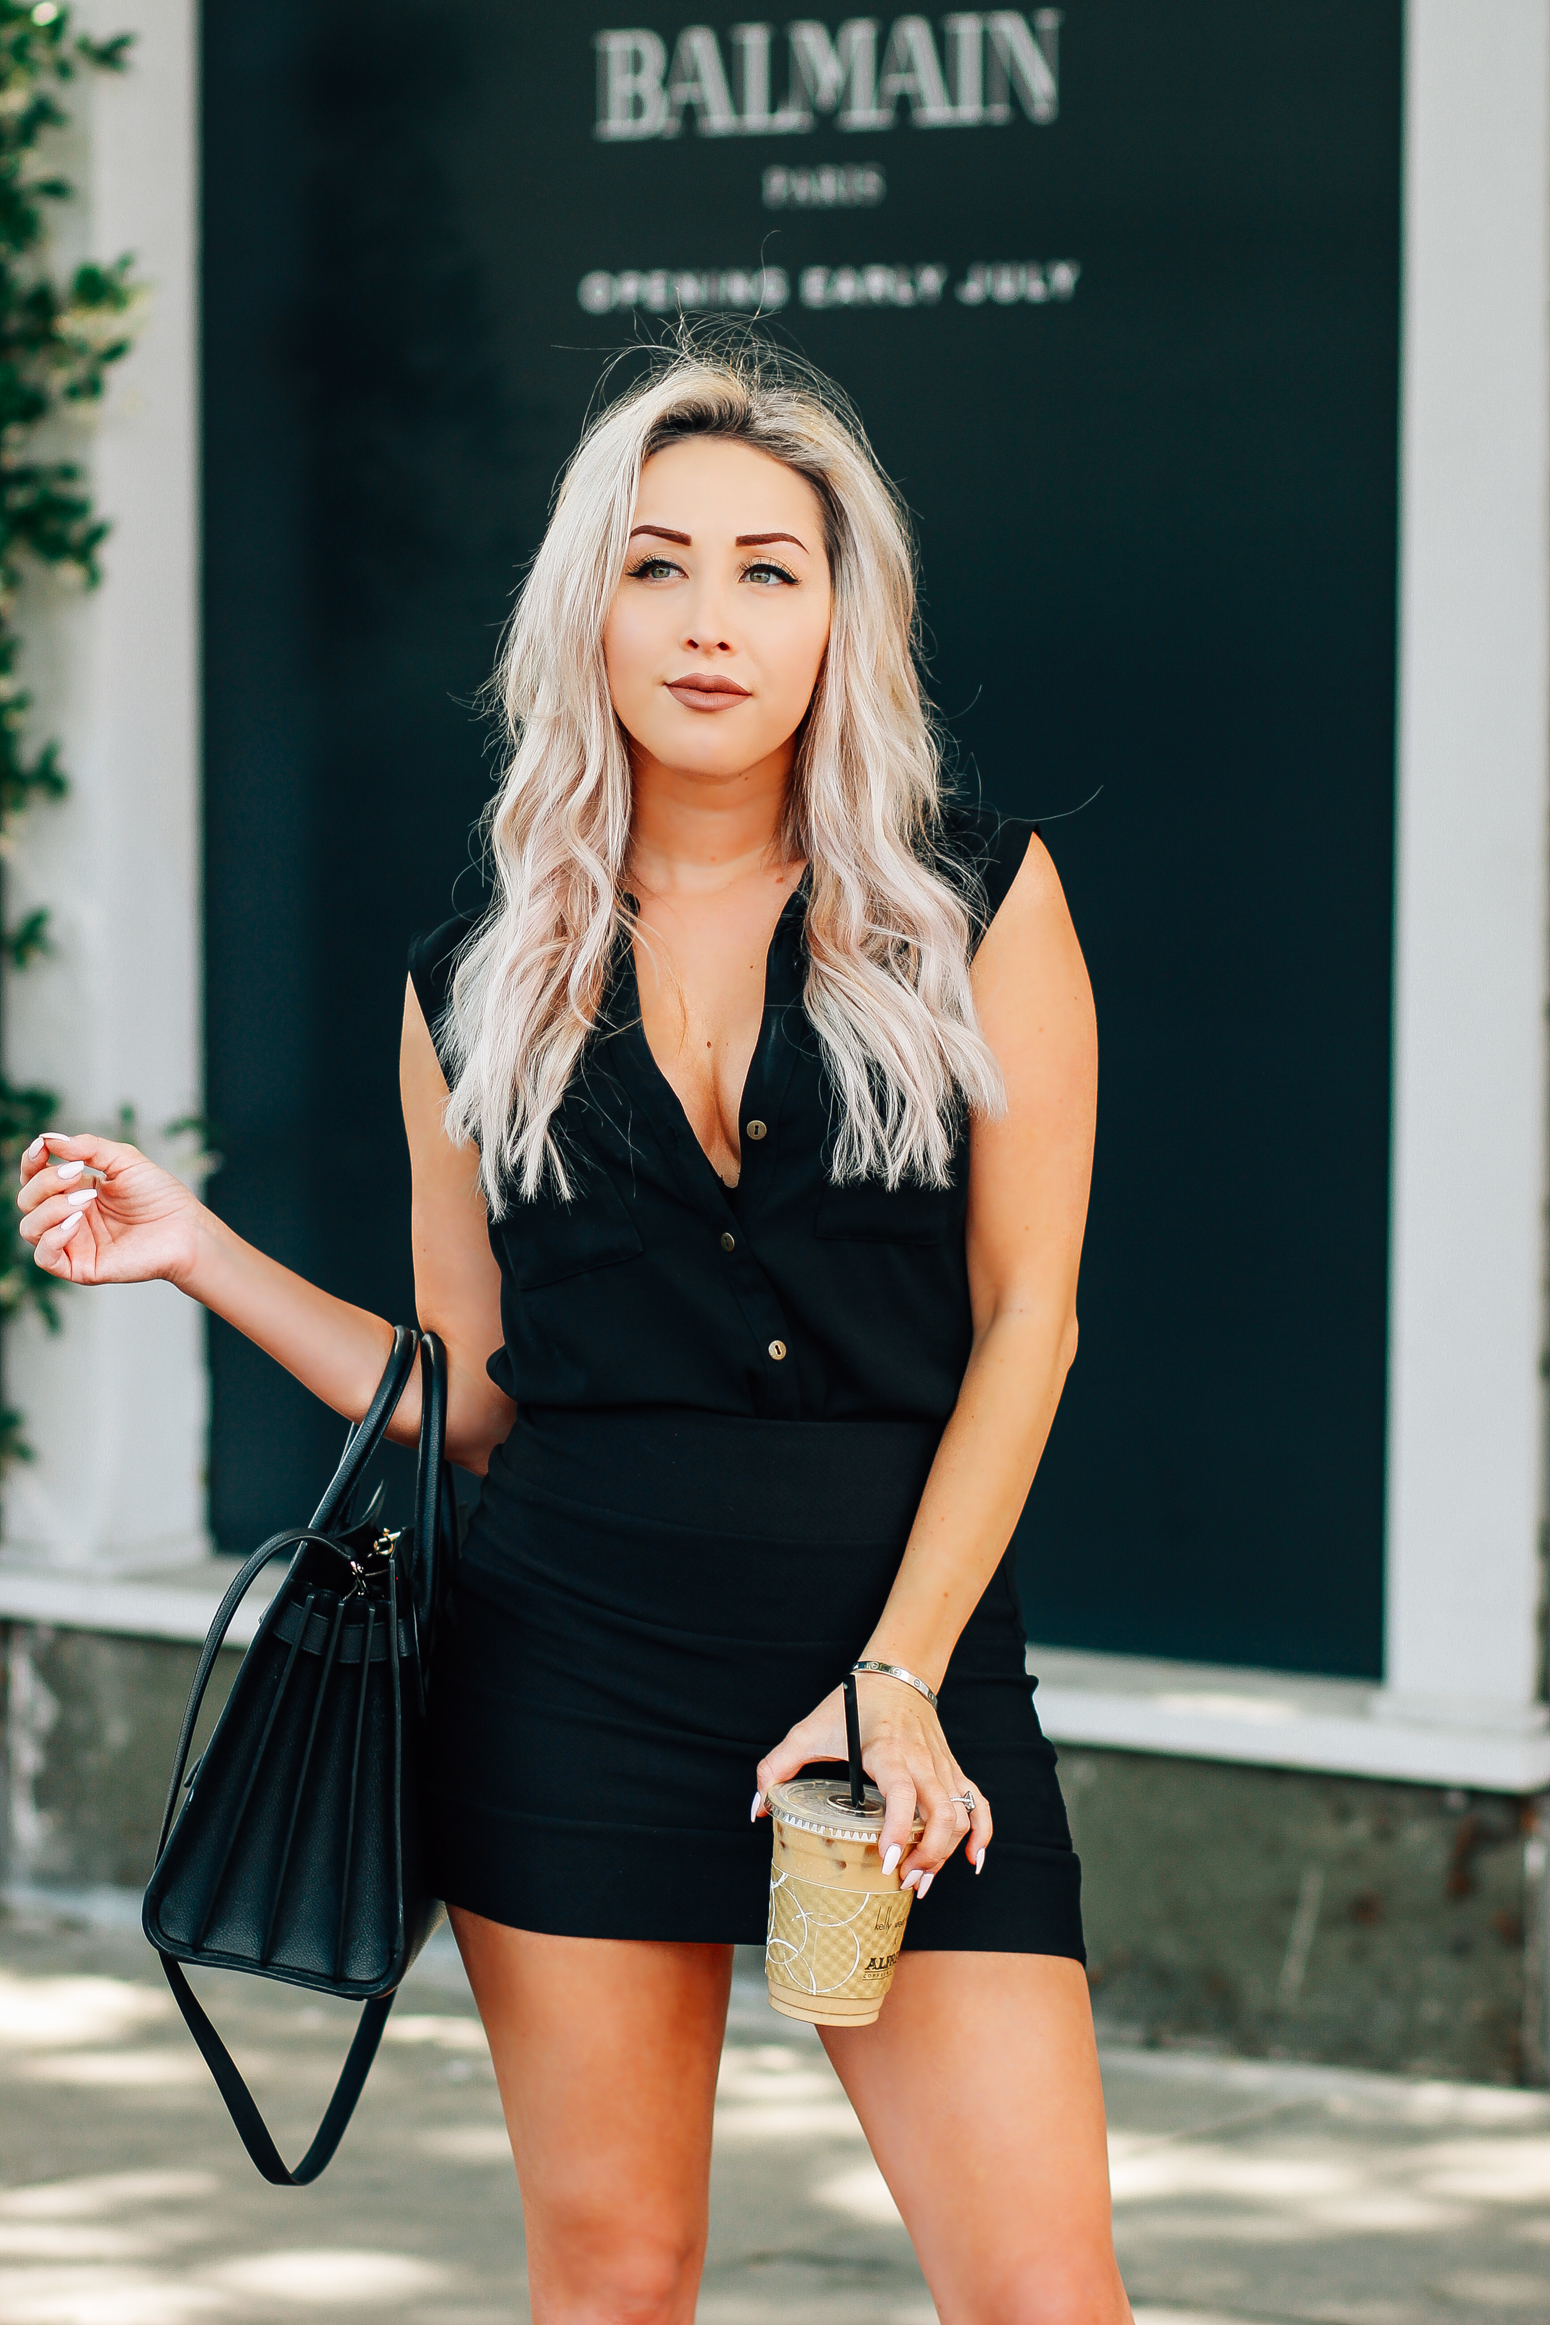 Blondie in the City | Black & Taupe Attire | YSL Bag | Black Saint Laurent Sac De Jour Bag